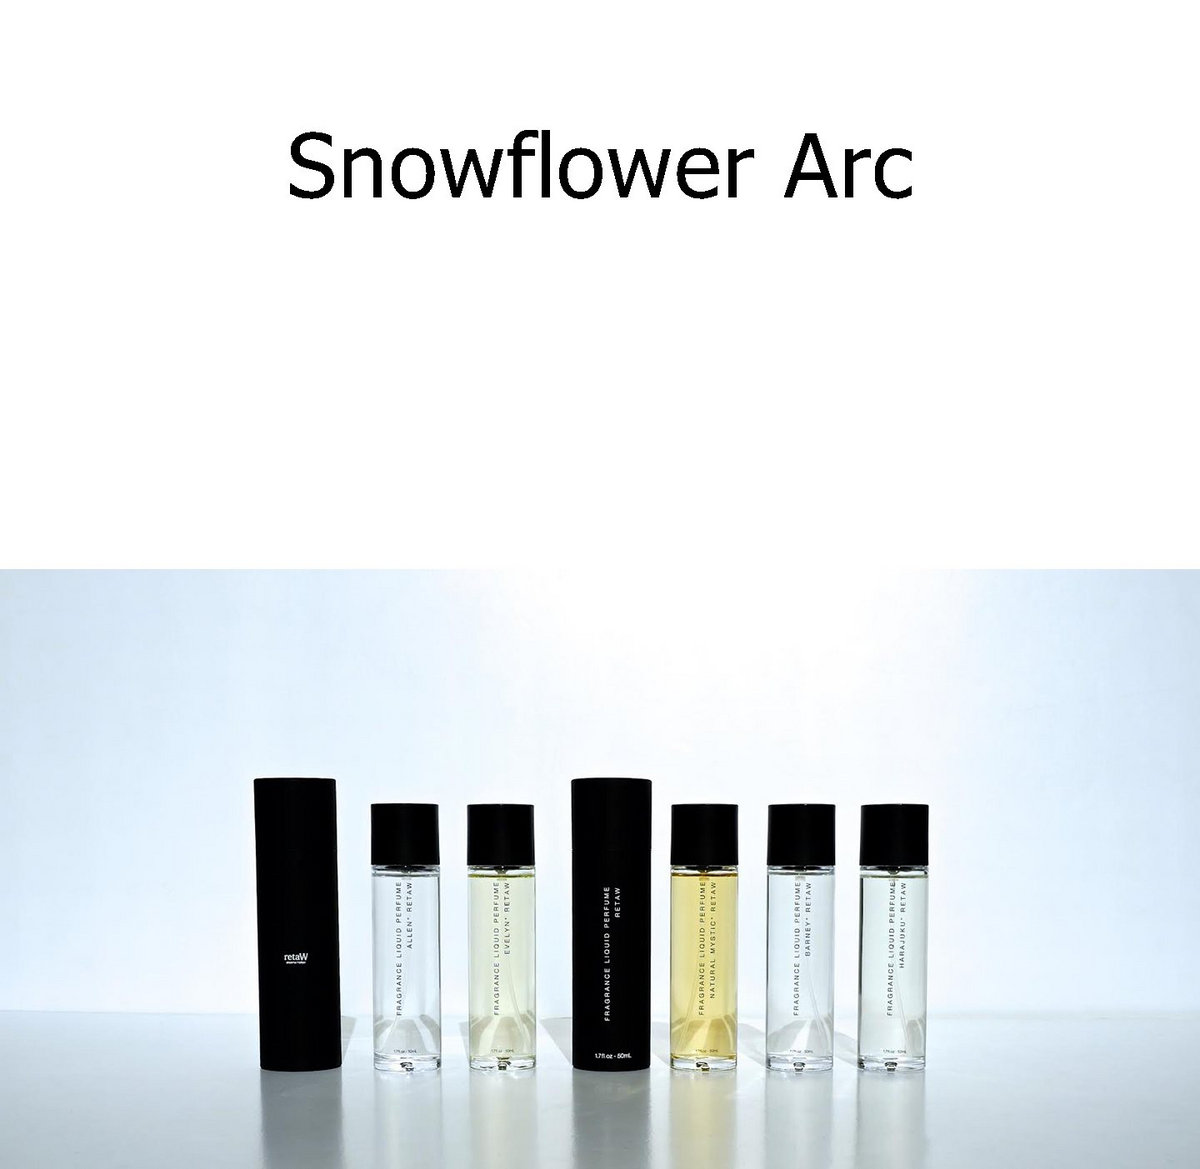 top 7) to iMac Pro how download 1 8 1 Snowflower Arc